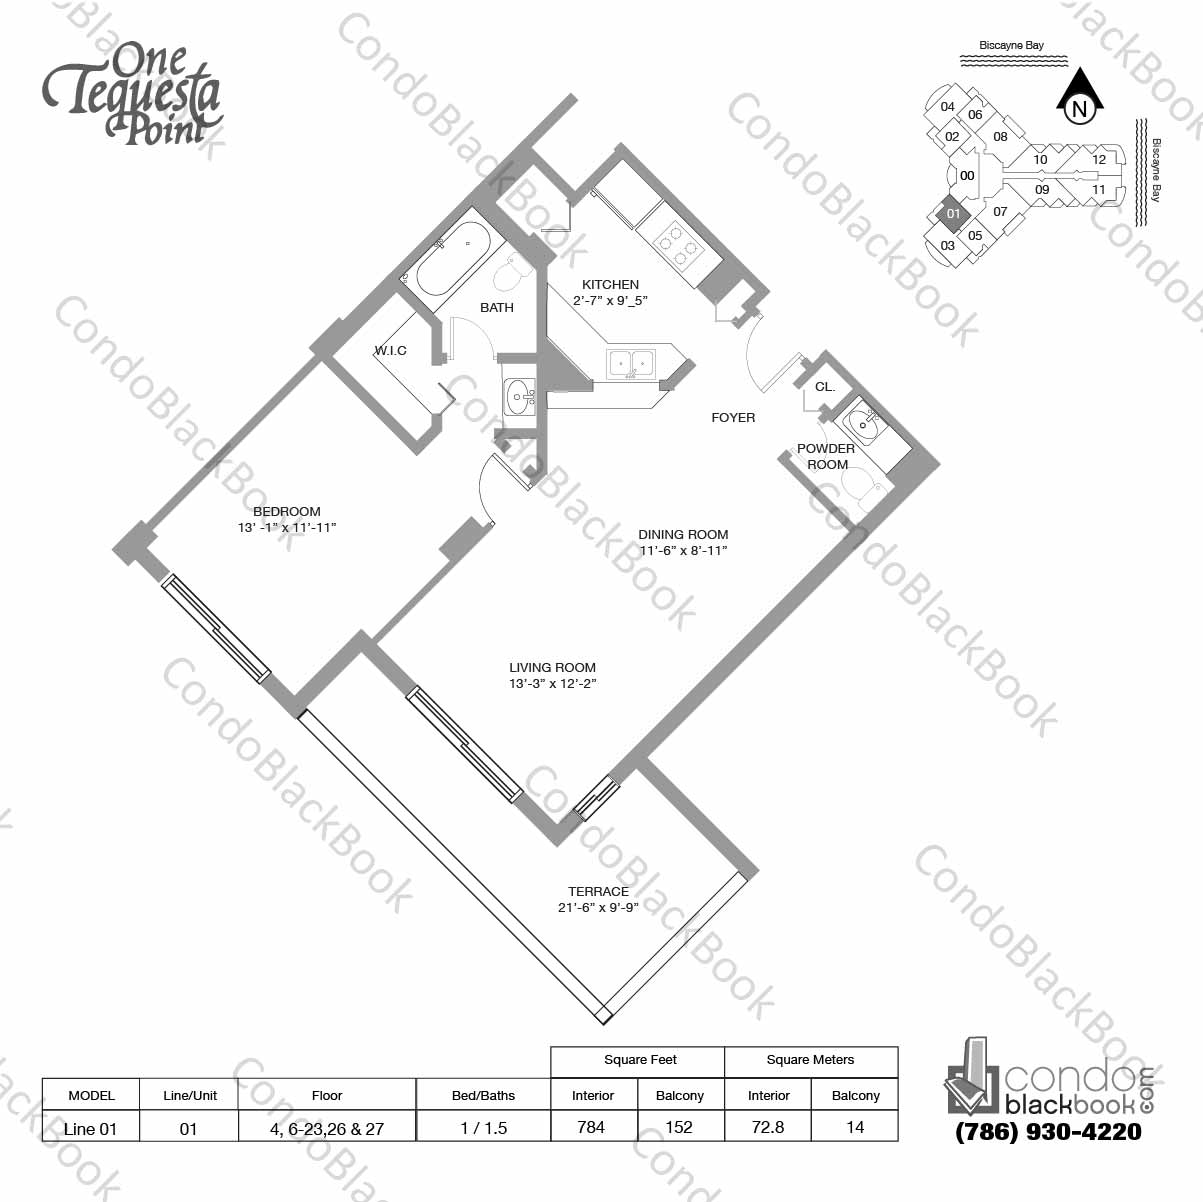 Floor plan for One Tequesta Point Brickell Key Miami, model Line 01, line 01, 1 / 1.5 bedrooms, 784 sq ft